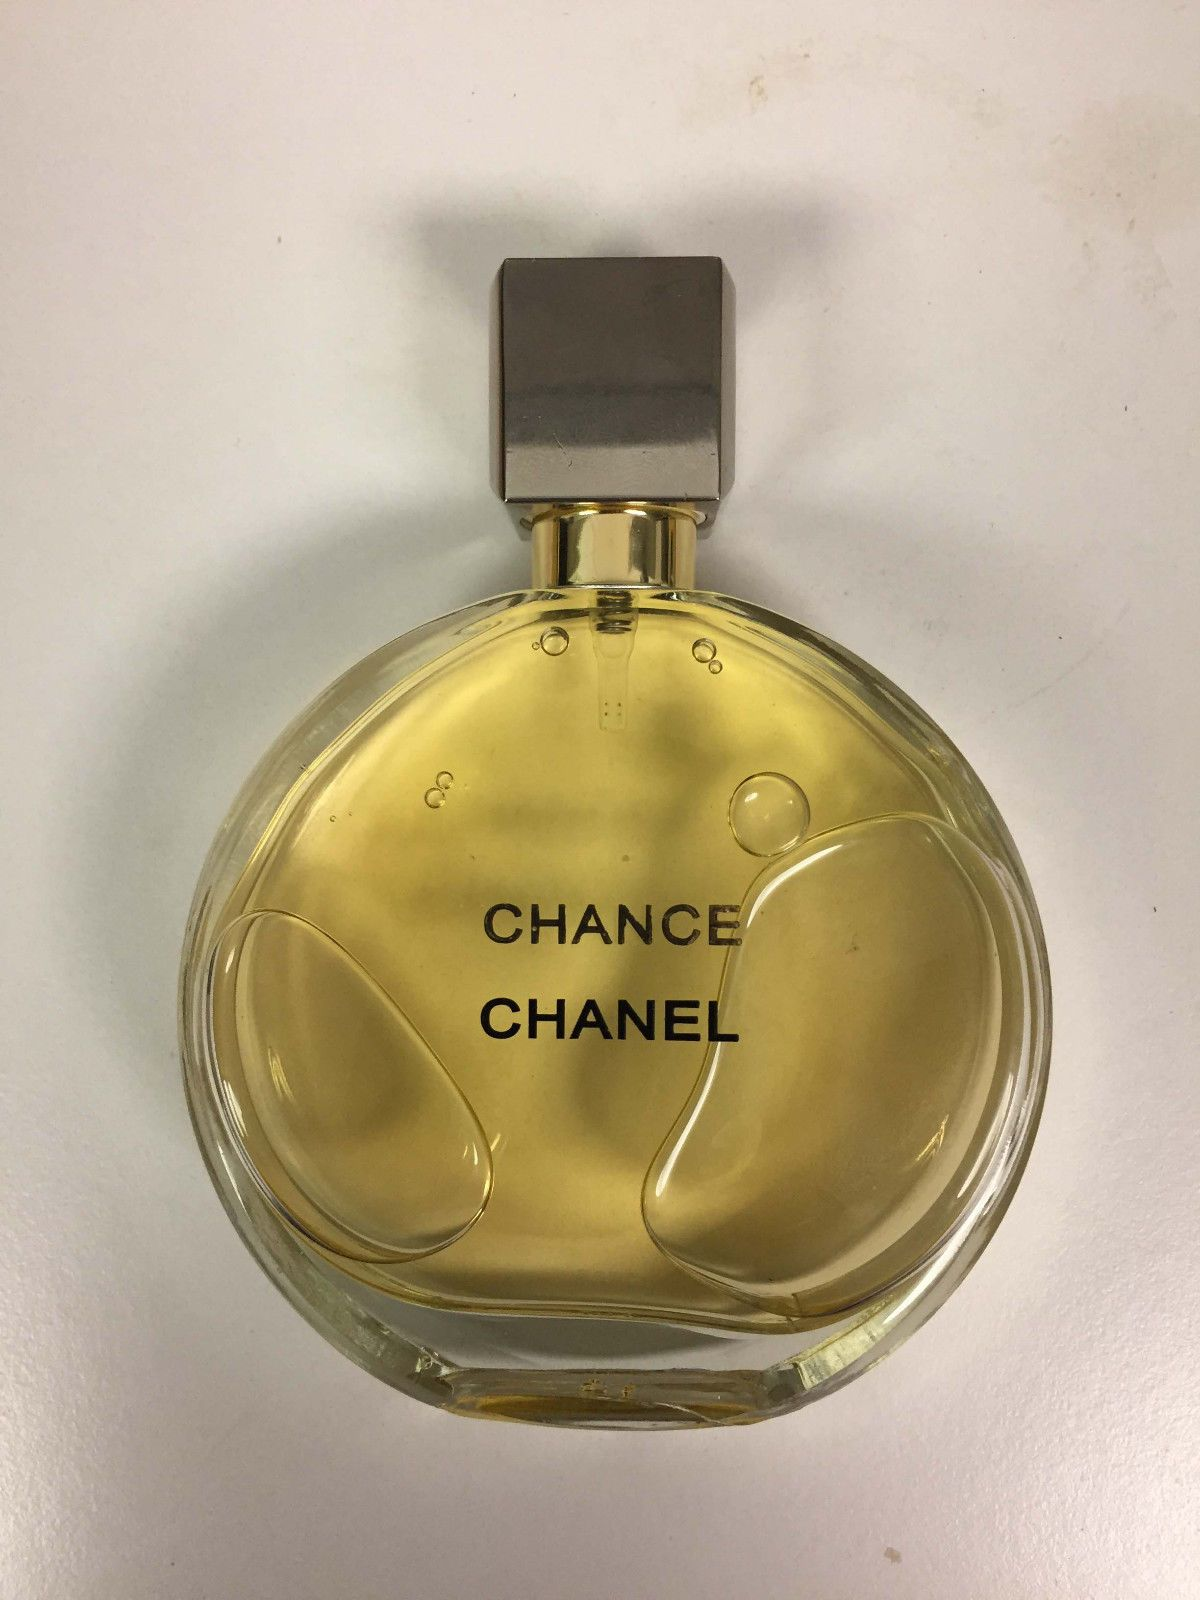 Chanel Chance 3.4oz  Women's Eau de Parfum100mlvaporisateur sprayNewSealed https://t.co/nNqScBhhsy https://t.co/n3hgyxgEu4